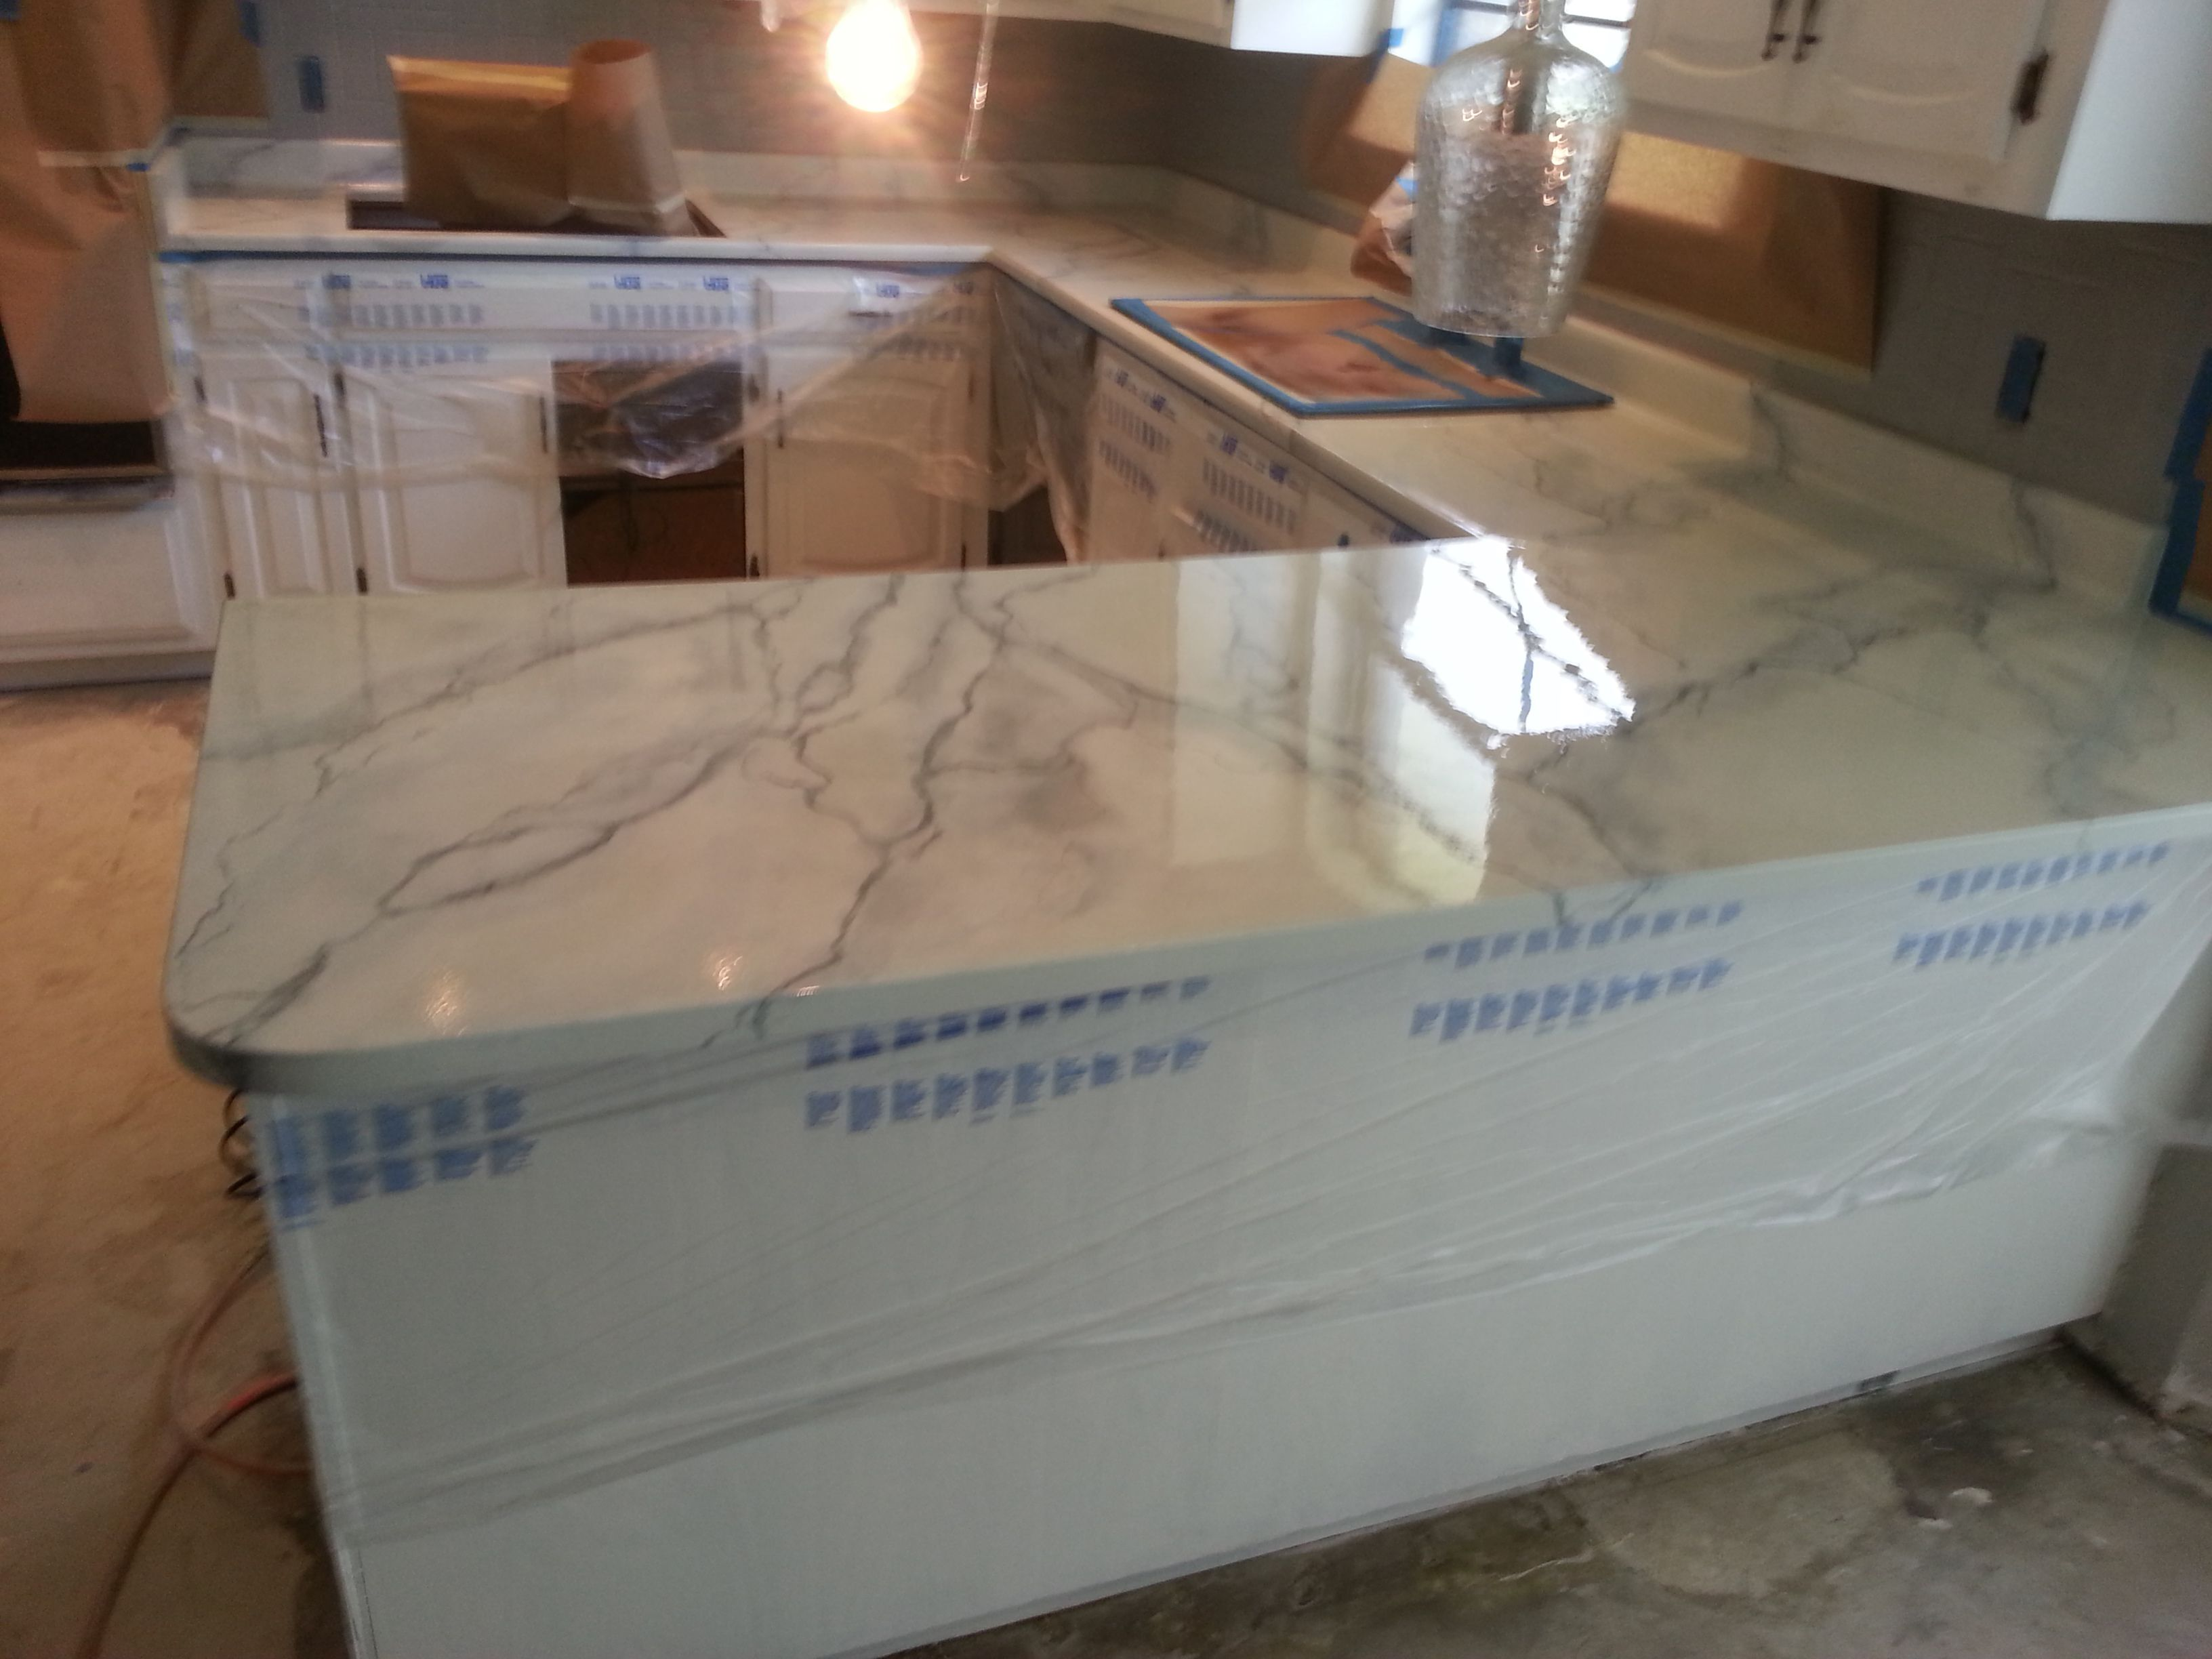 Laminate Counter Tops After Resurfaced To Look Like Carrara Marble Paddle Bathroom